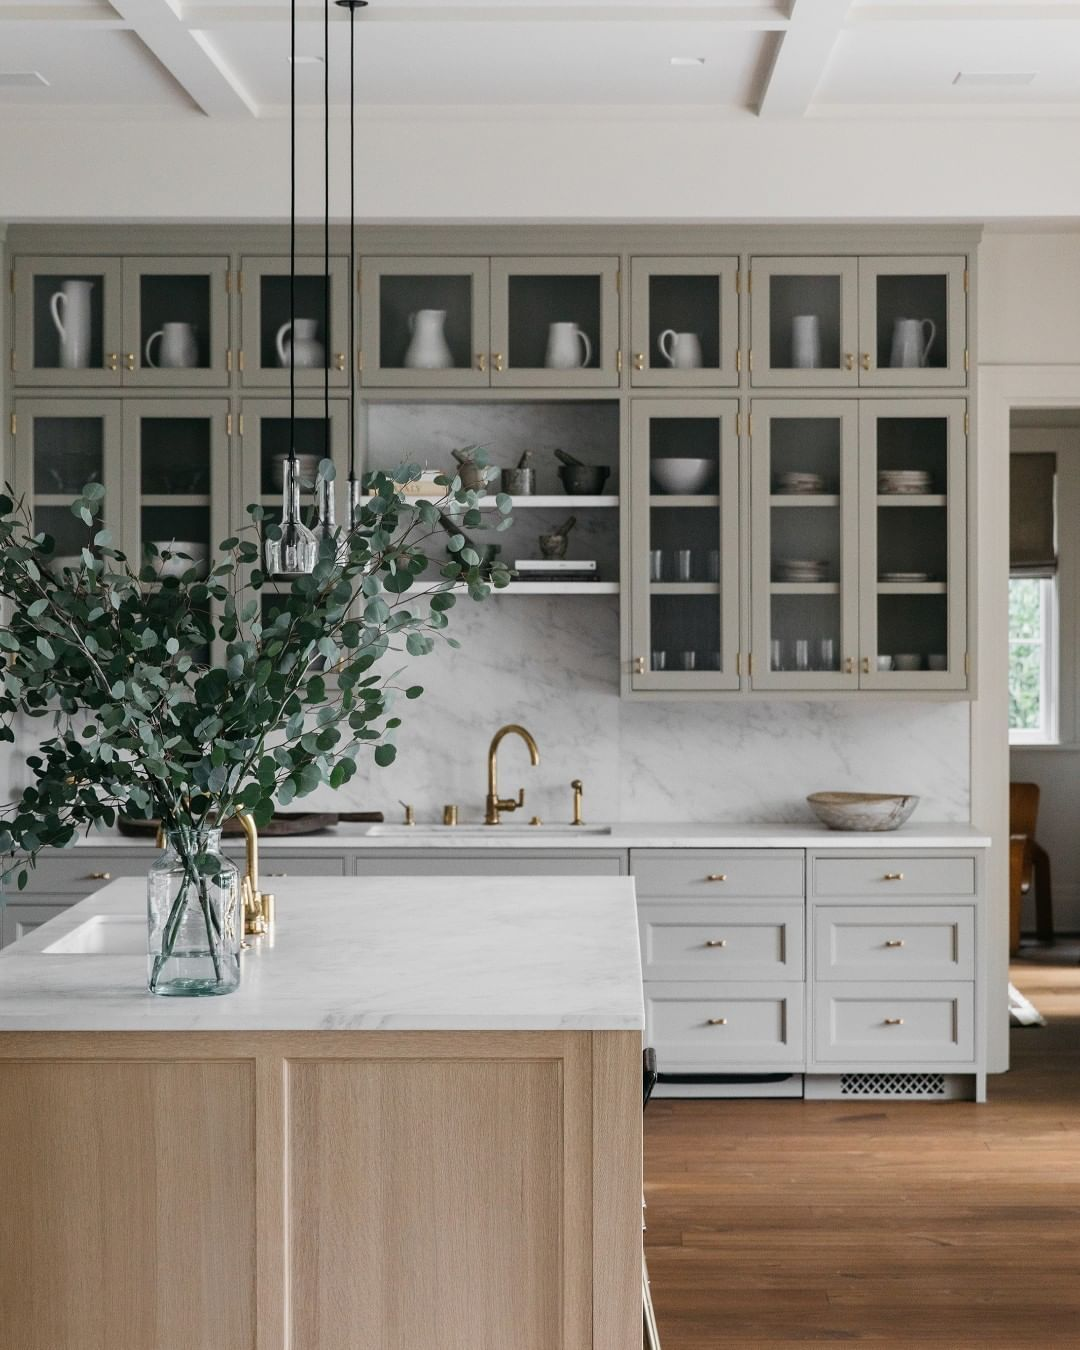 Waterworks On Instagram The Stunning Subtleties In The Kitchen Of Galerieprovenance With Henry Create In 2021 Kitchen Design Plans Kitchen Remodel Kitchen Design